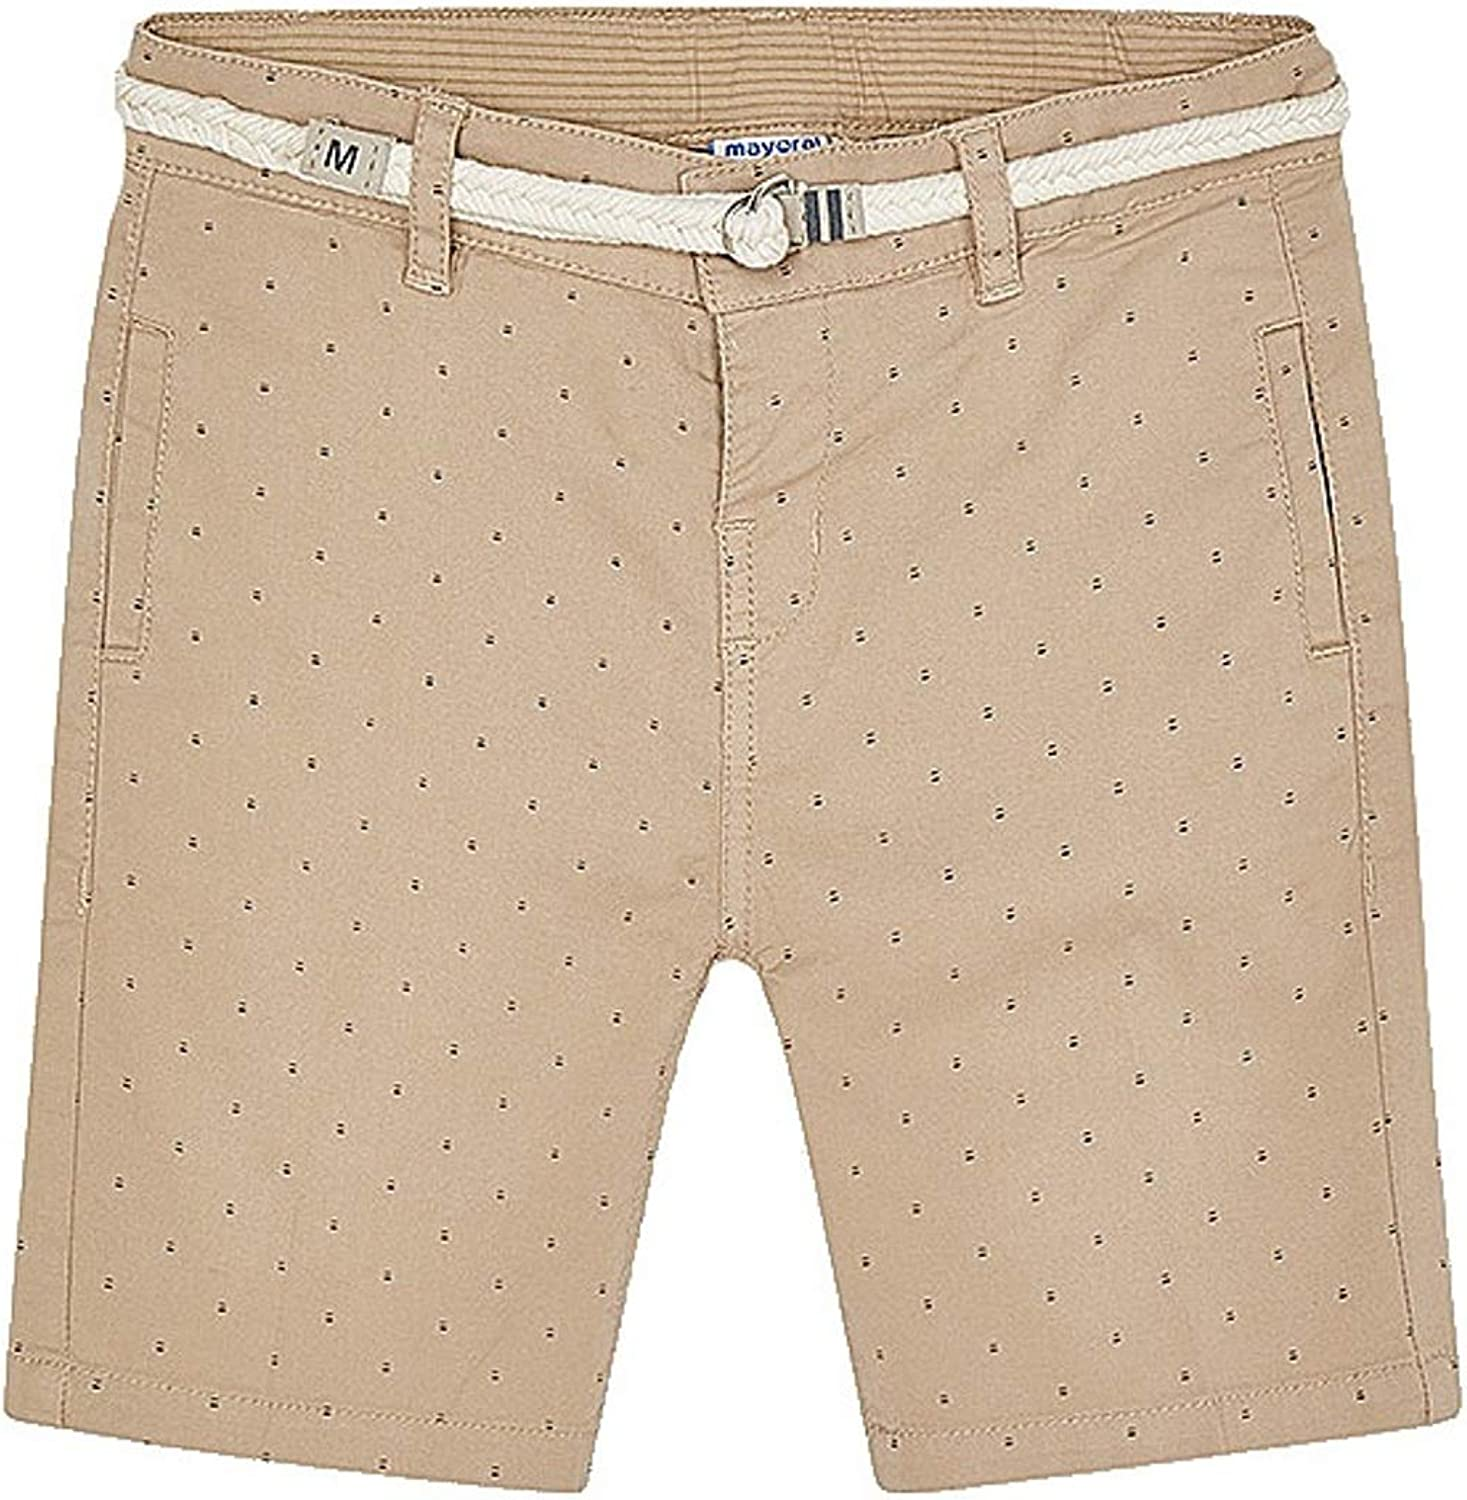 Mayoral - 2021new shipping free Topics on TV Printed Shorts with for 3243 Sesame Belt Boys